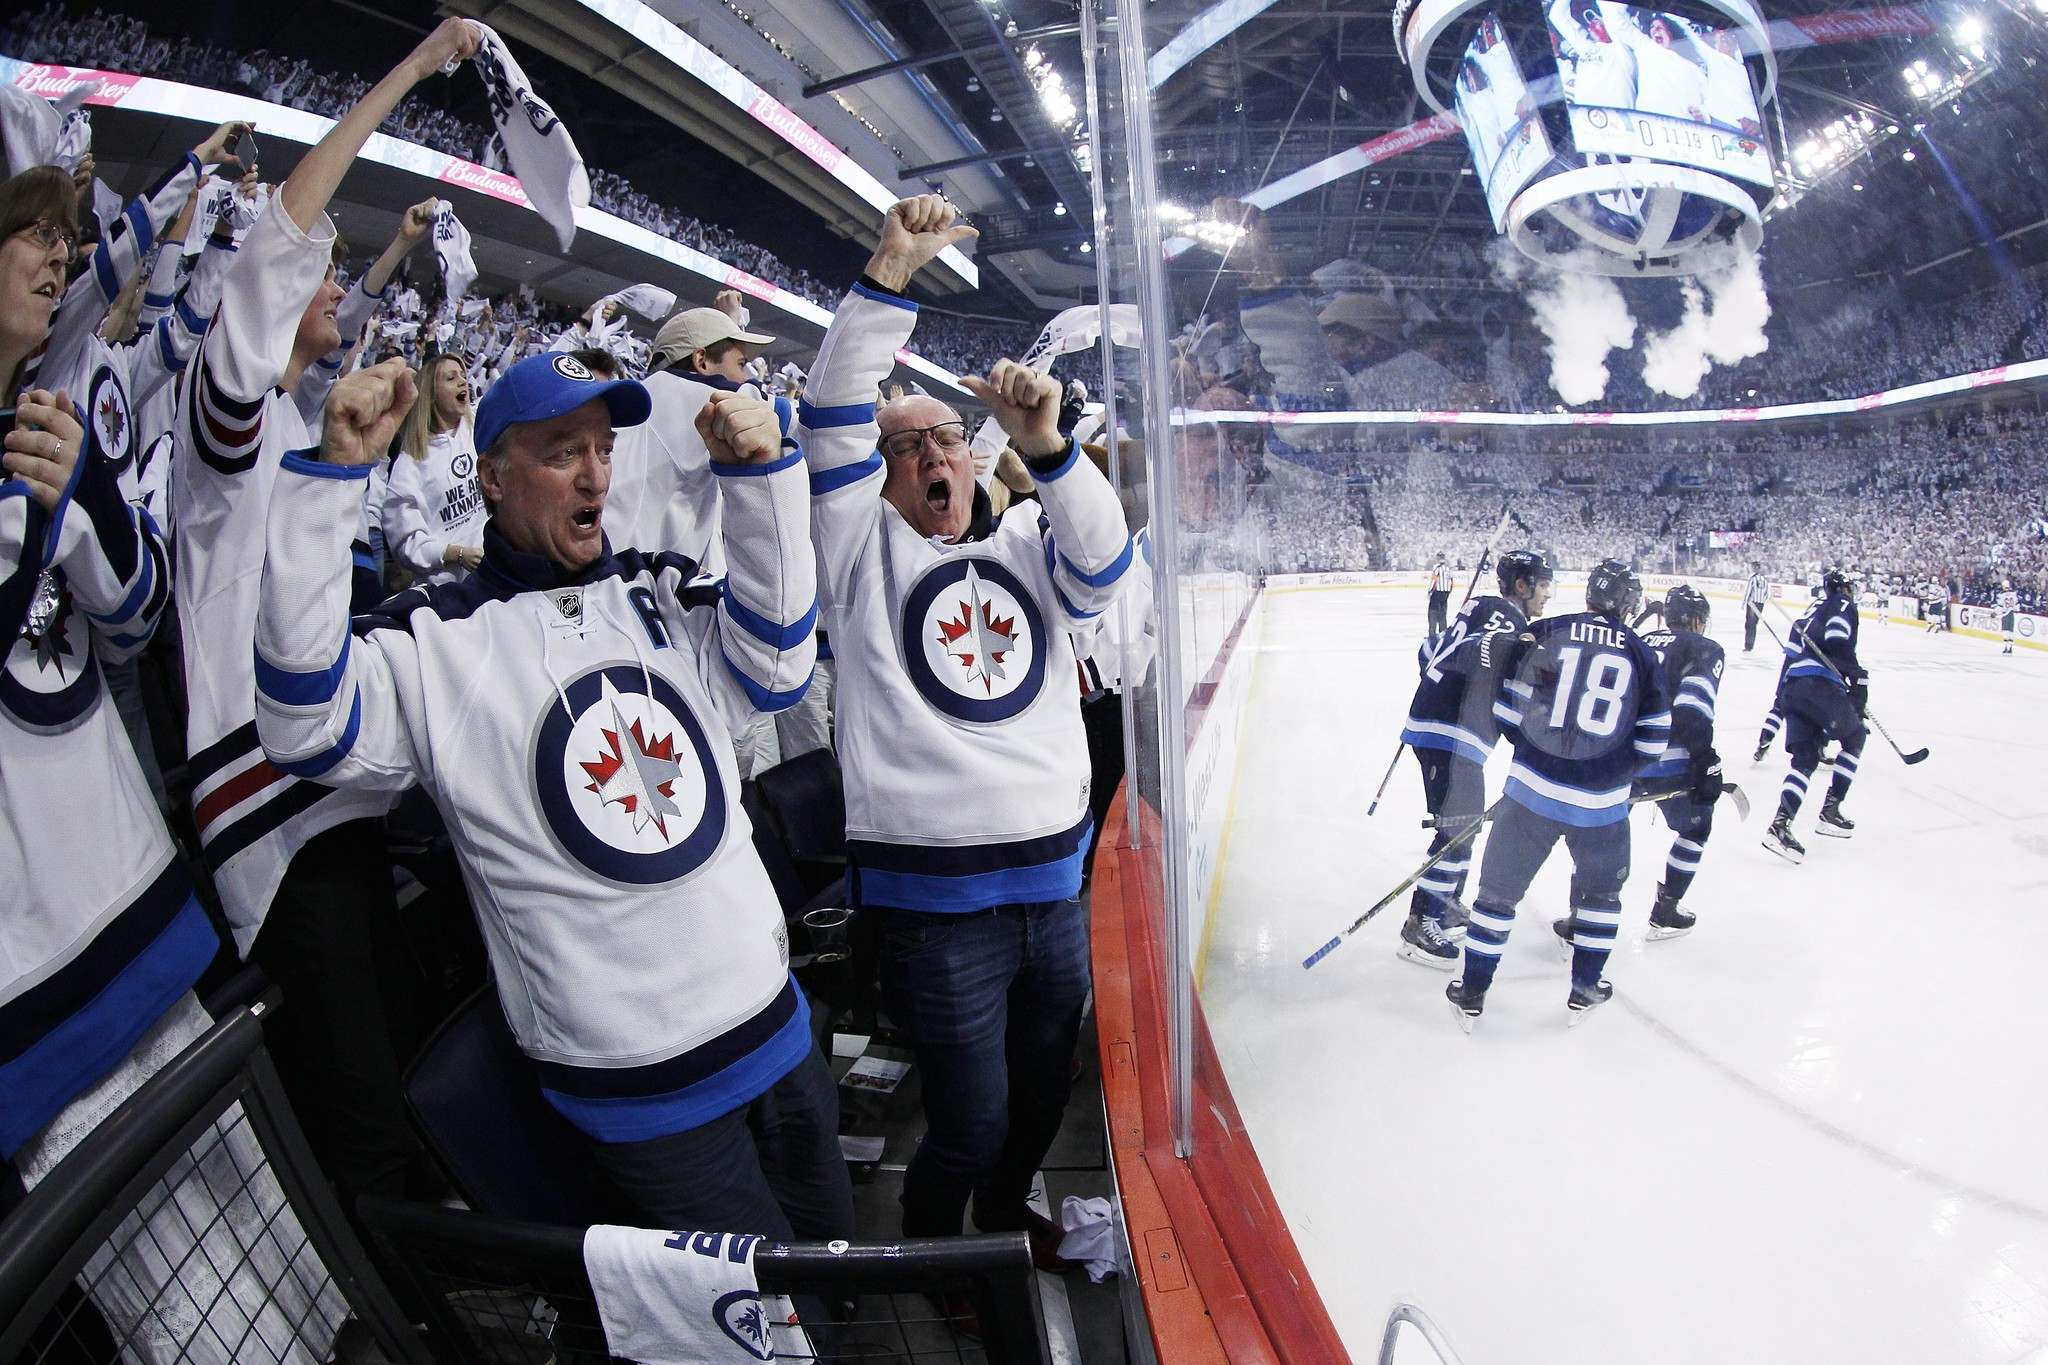 Nashville Predators force game 7 with win over Winnipeg Jets